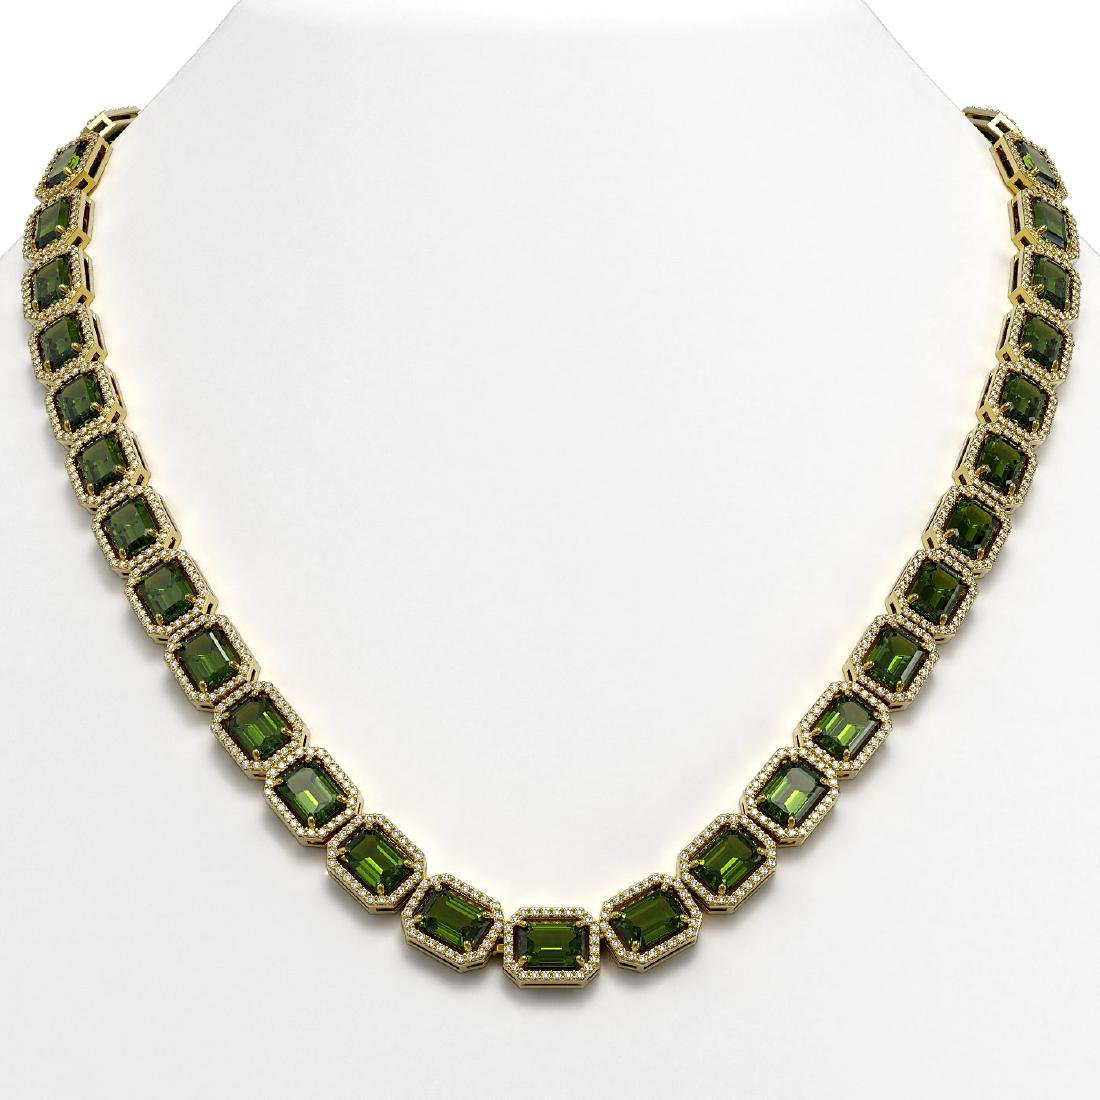 60.49 CTW Tourmaline & Diamond Halo Necklace 10K Yellow